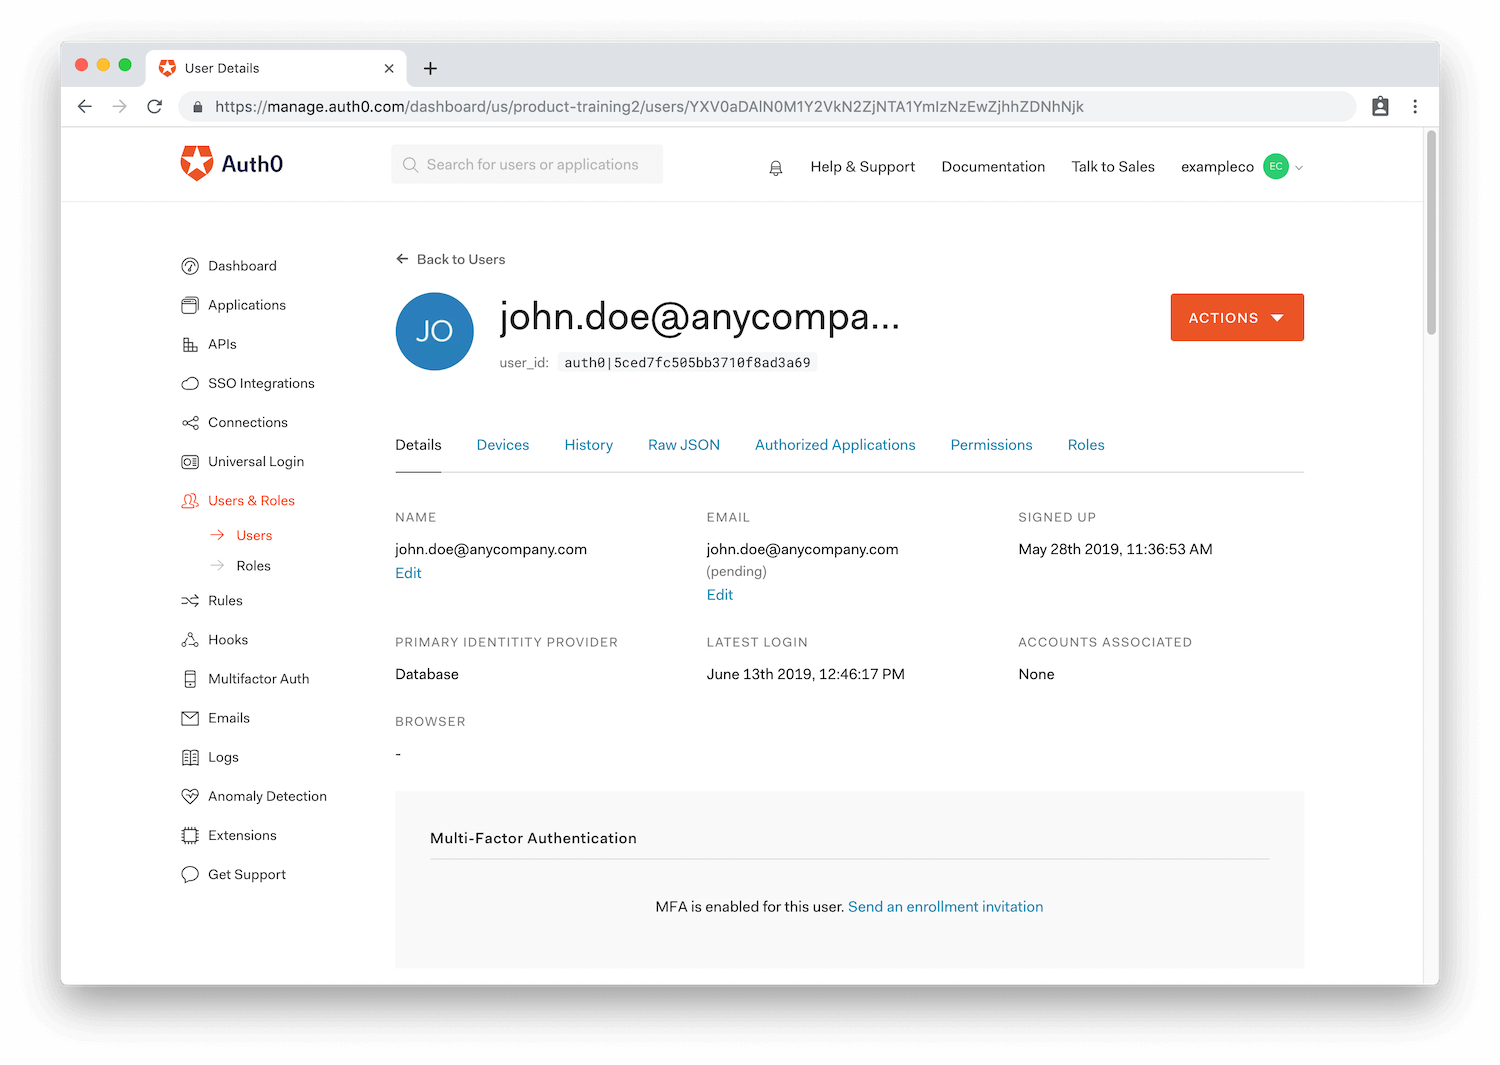 Image of Auth0 Dashboard showing the User Details view